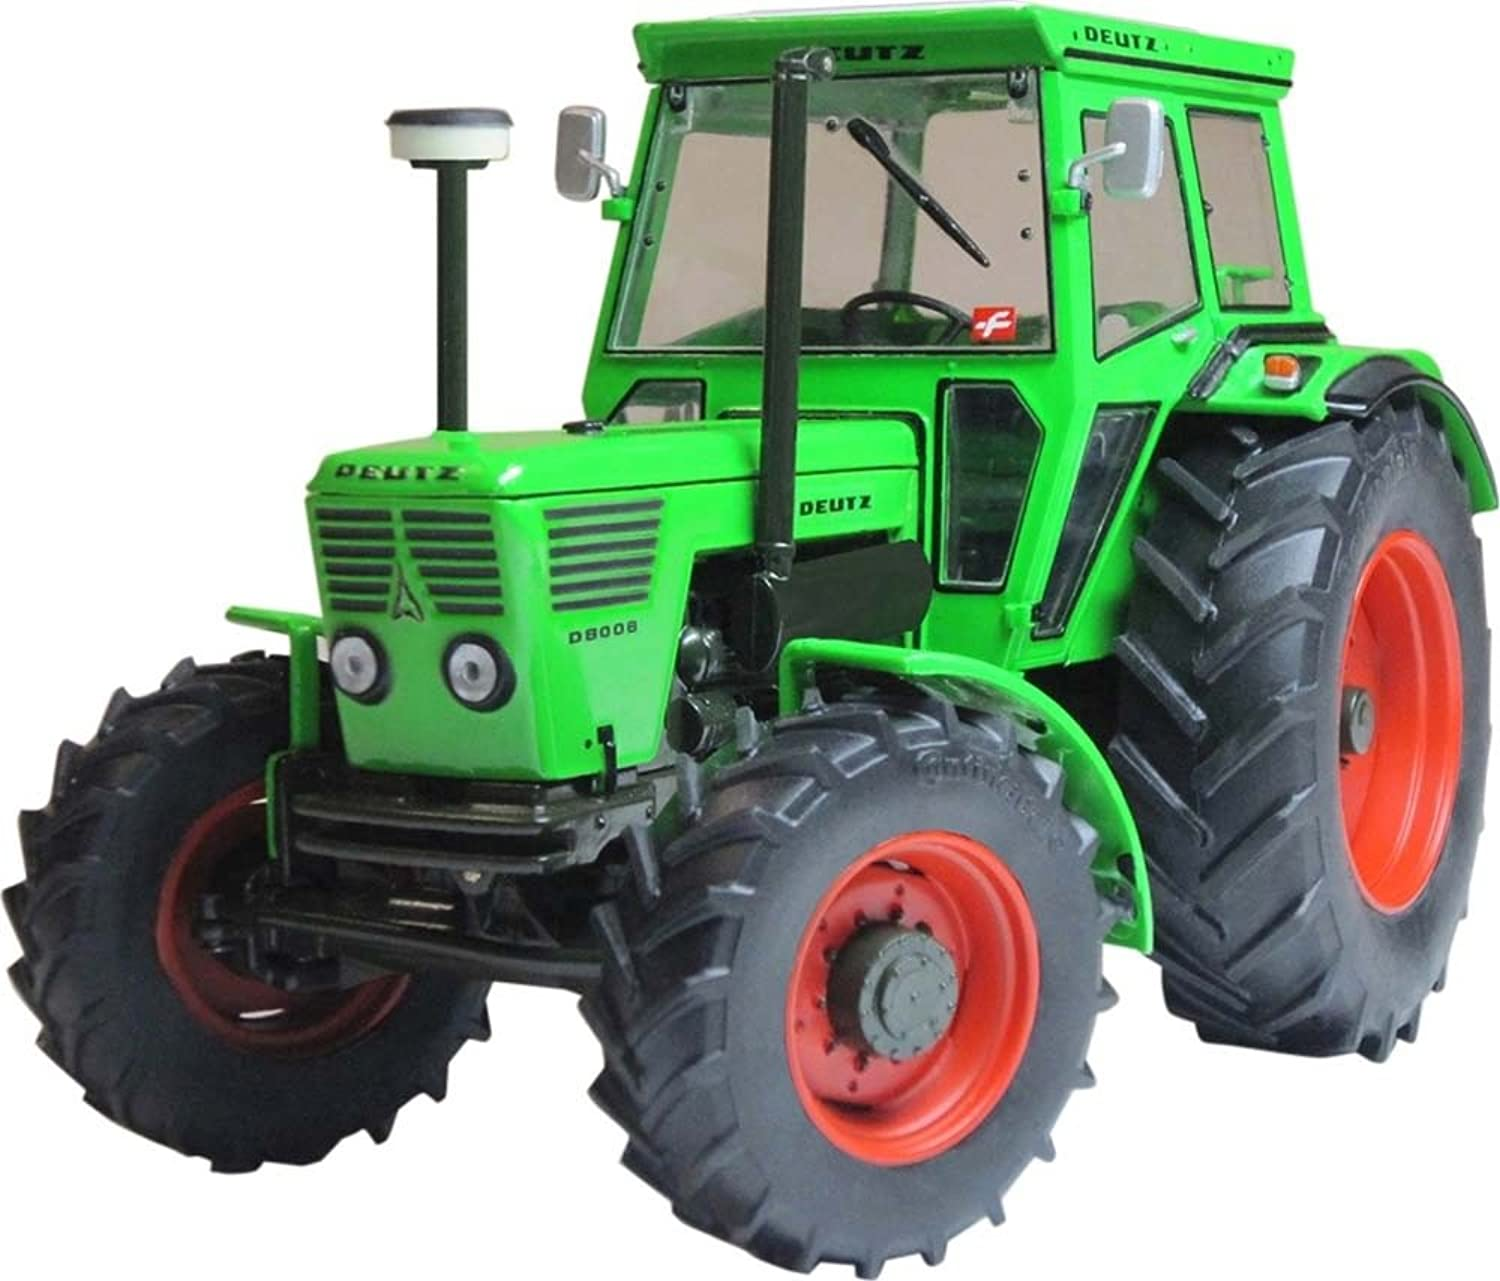 Weise-Toys 1039 FENDT DEUTZ D 80 06 (Version 1974-1978) (2016) Tractor Model, Multi-color